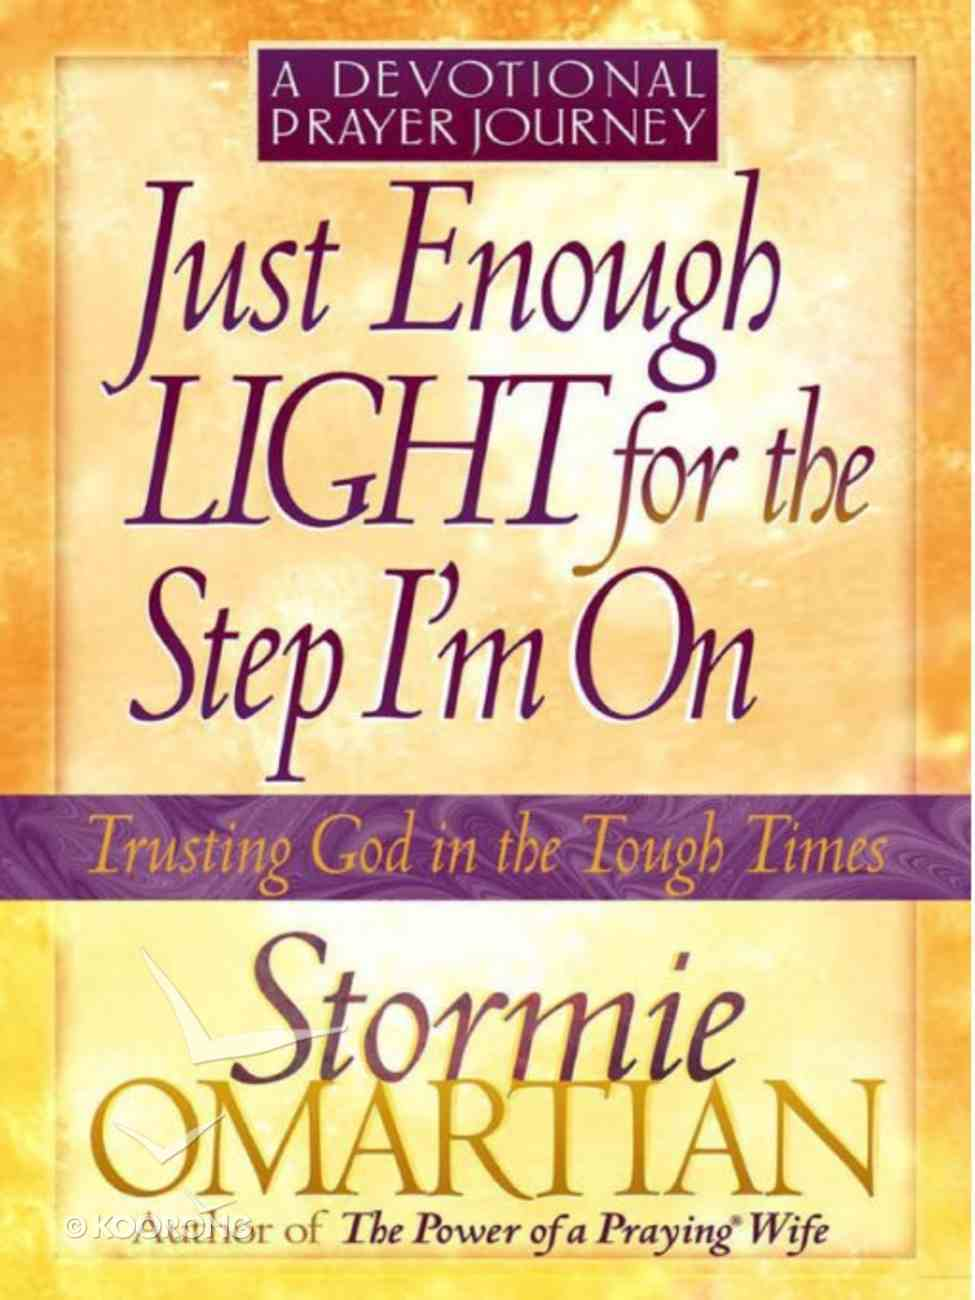 Just Enough Light For the Step I'm on (Devotional Prayer Journey) eBook